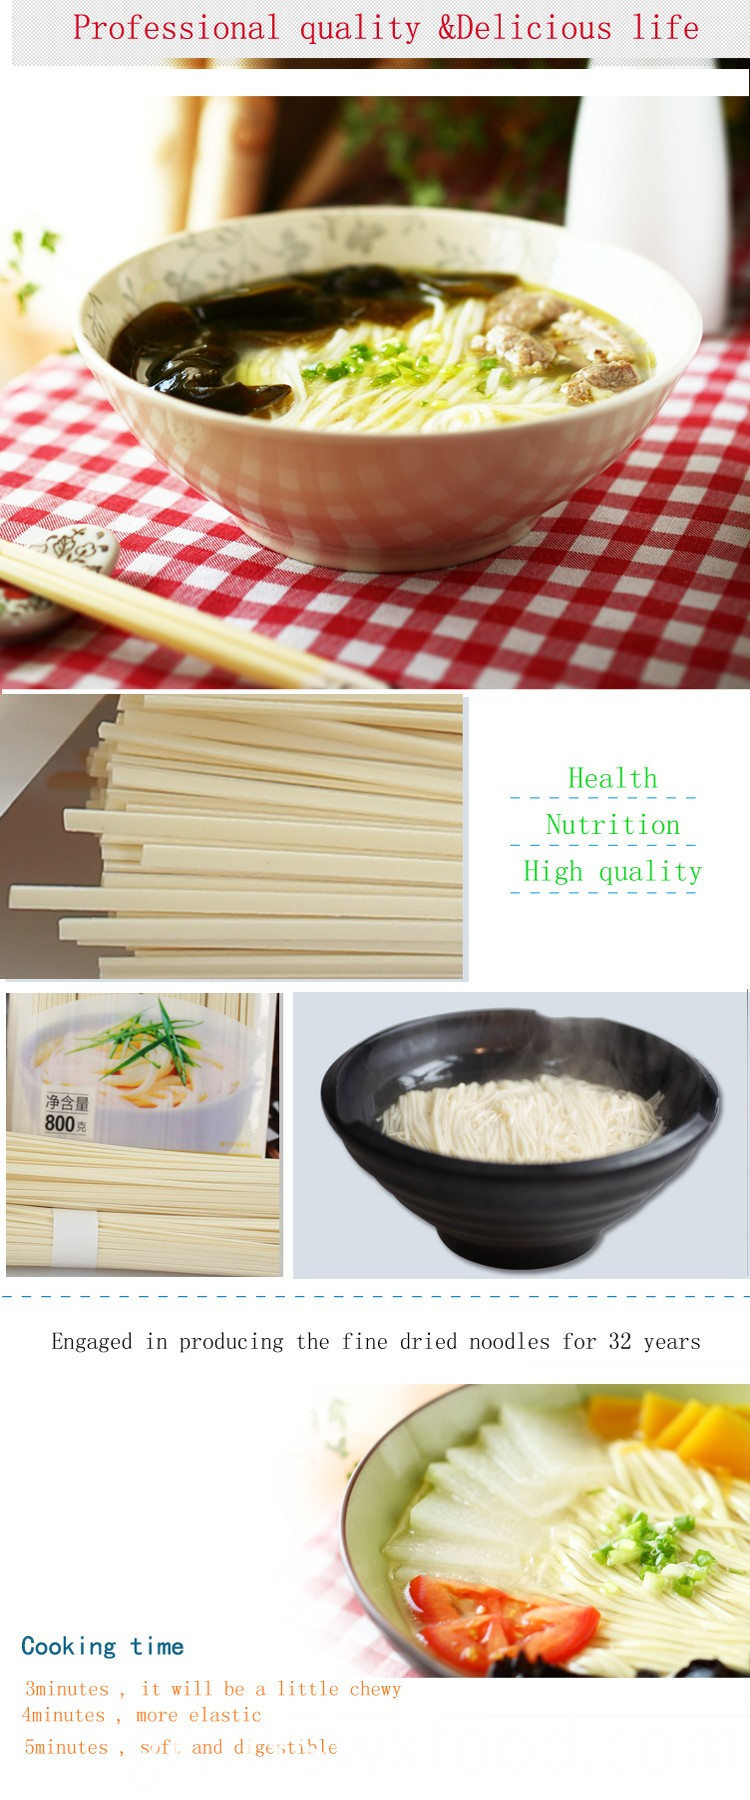 Corn Noodles Rich in Dietary Fiber